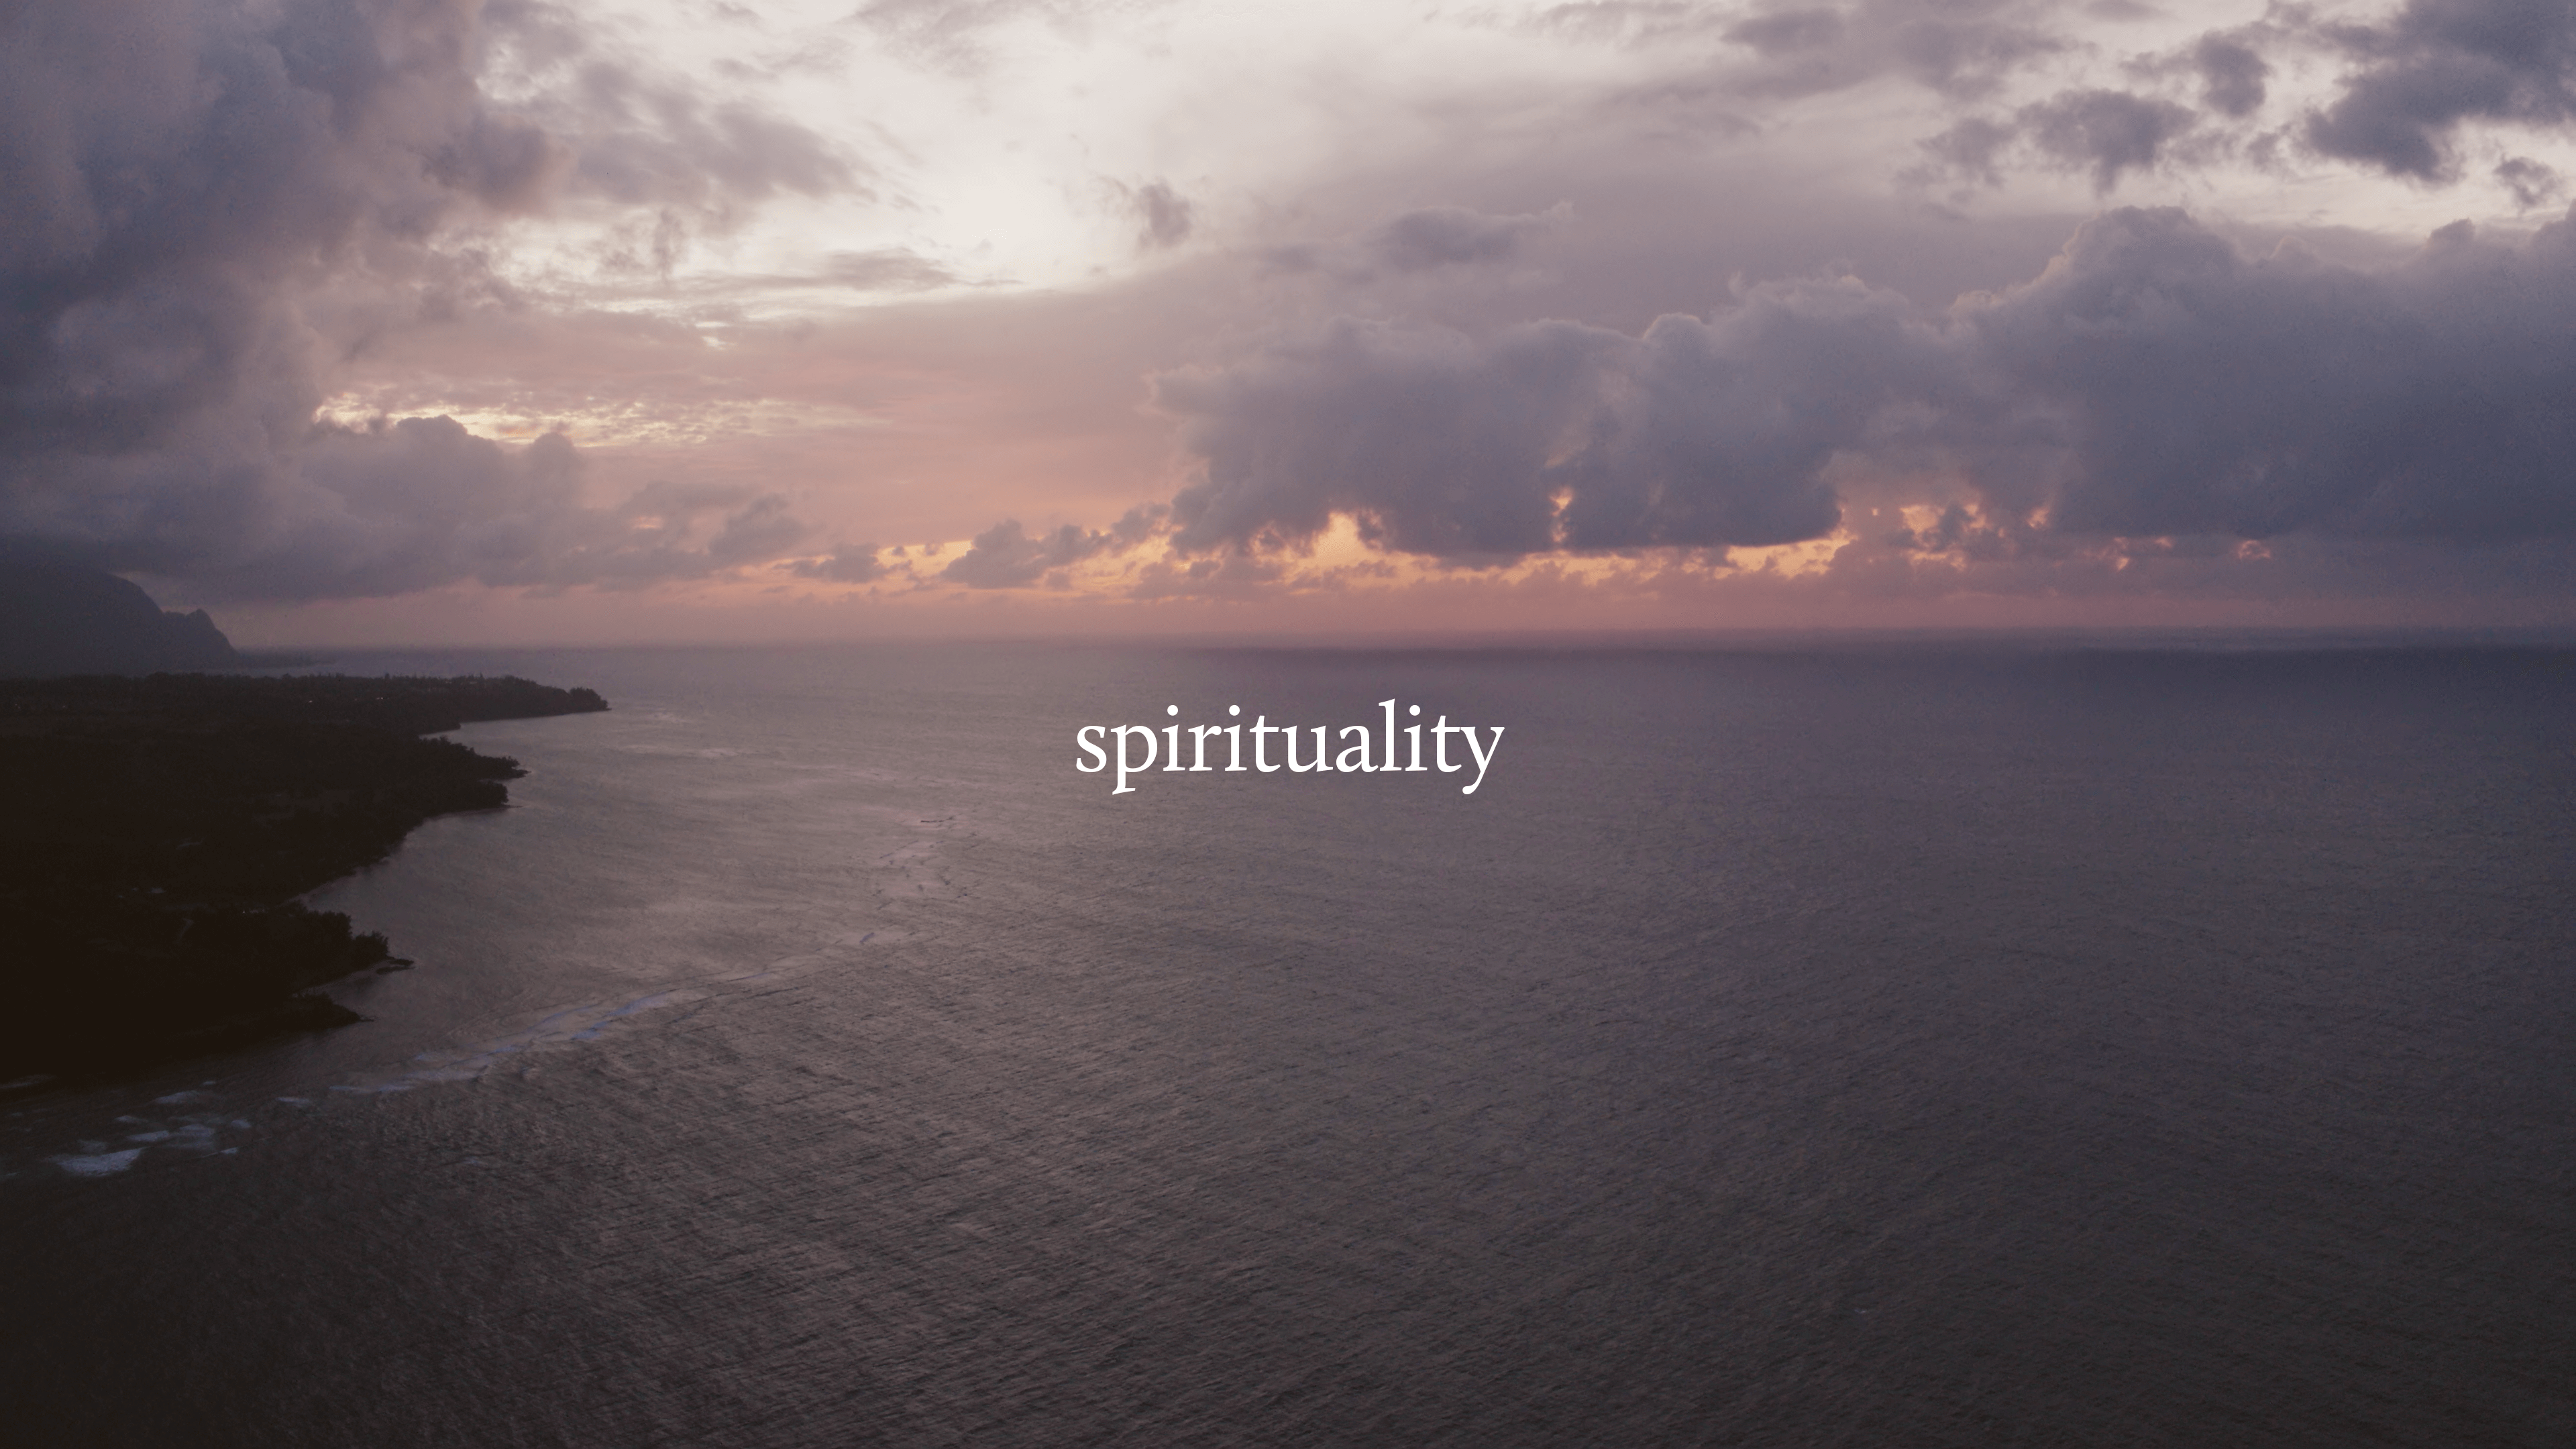 Sermon Series Ideas #9: Spirituality